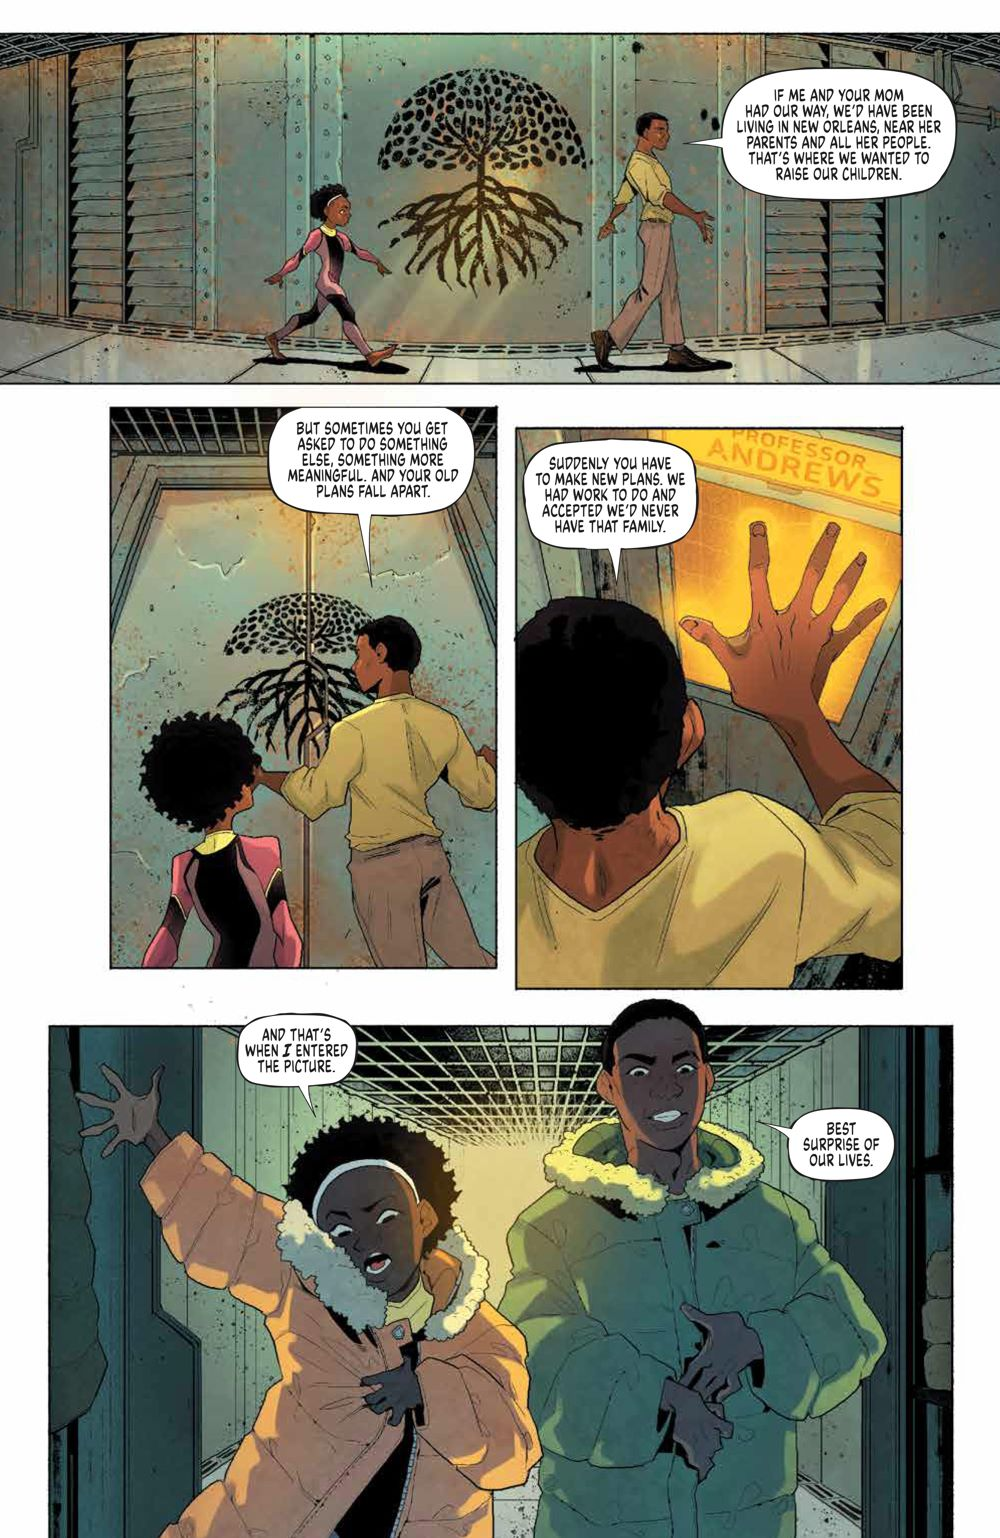 Eve_001_PRESS_8 ComicList Previews: EVE #1 (OF 5)